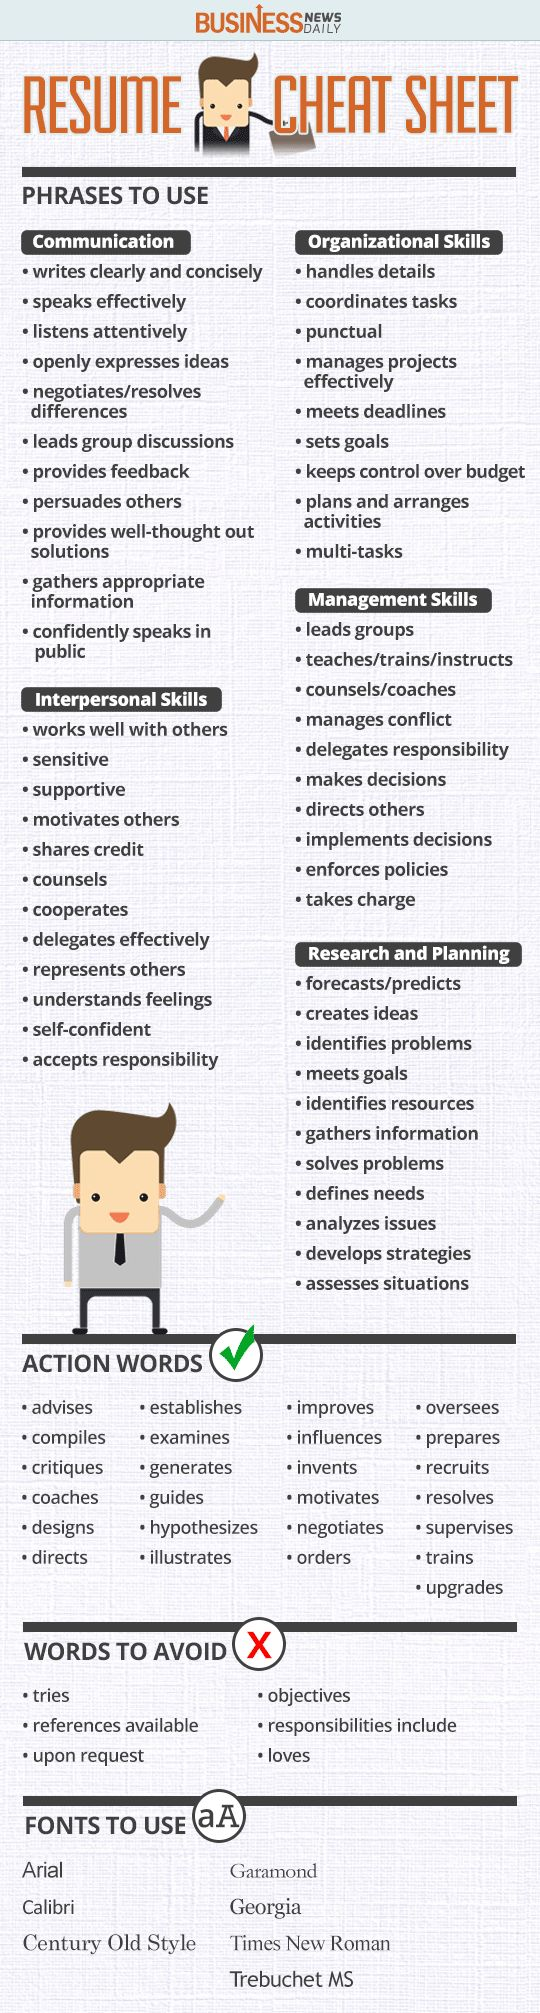 Opposenewapstandardsus  Stunning  Ideas About Resume On Pinterest  Cv Format Resume Cv And  With Remarkable Resume Cheat Sheet Infographic Andrews Almost Done With A Complete Unit On Employment Which With Amazing Resume References Sample Also Local Resume Services In Addition Software Quality Assurance Resume And Trainer Resume Sample As Well As Architecture Resume Sample Additionally Good Resume Headline From Pinterestcom With Opposenewapstandardsus  Remarkable  Ideas About Resume On Pinterest  Cv Format Resume Cv And  With Amazing Resume Cheat Sheet Infographic Andrews Almost Done With A Complete Unit On Employment Which And Stunning Resume References Sample Also Local Resume Services In Addition Software Quality Assurance Resume From Pinterestcom